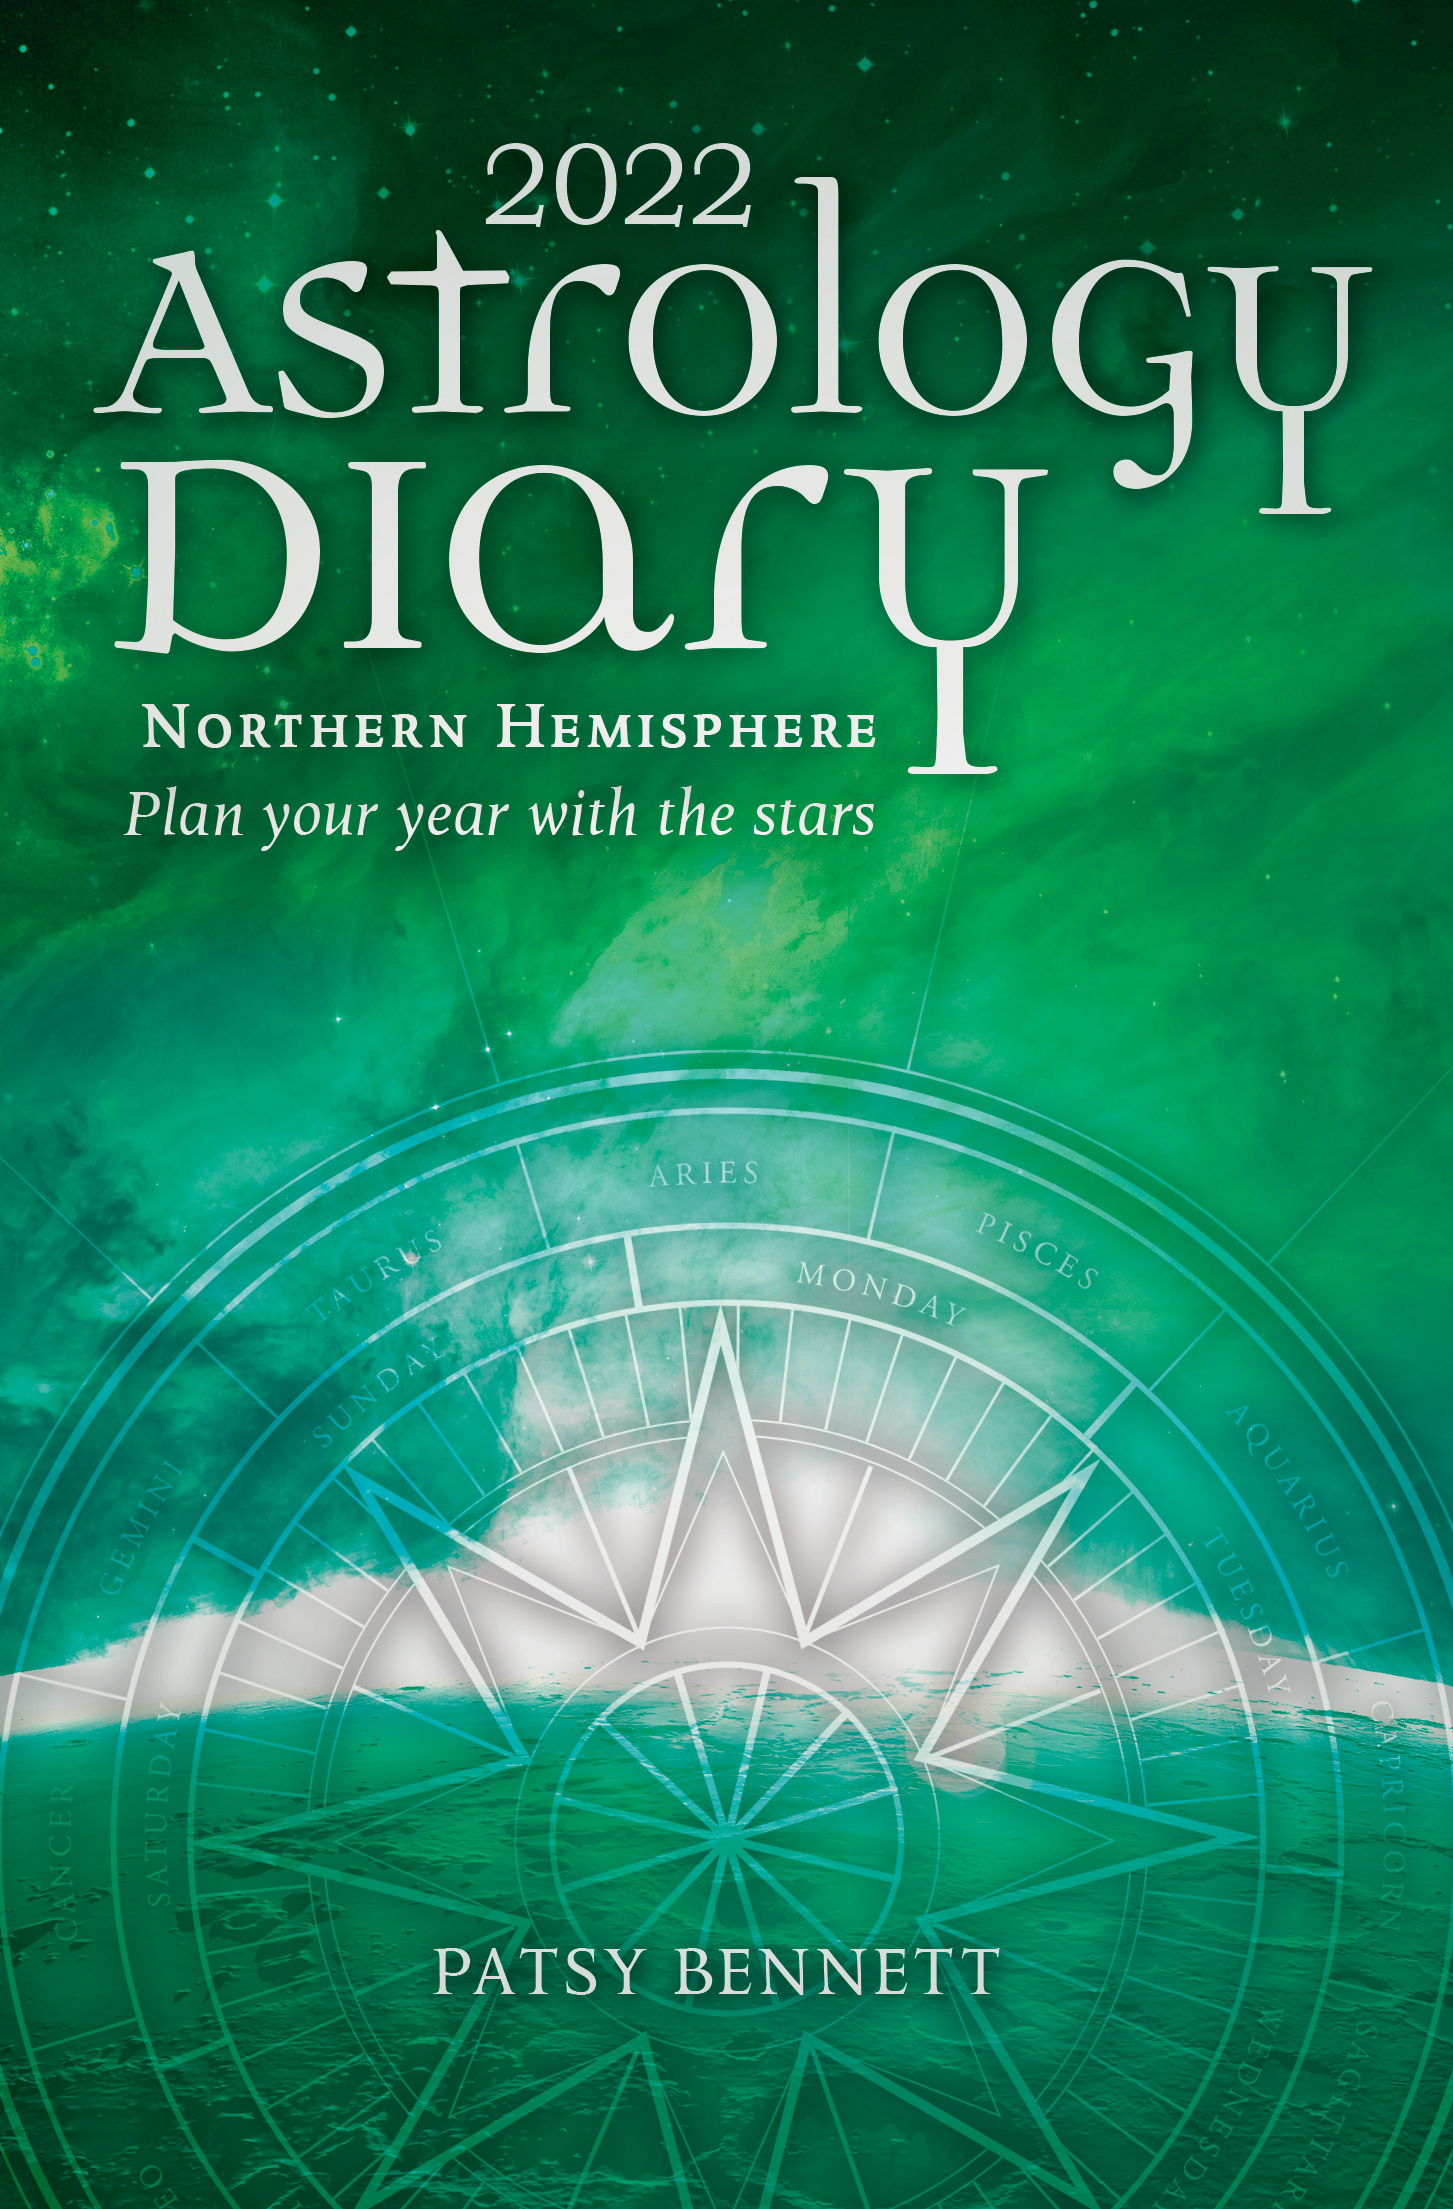 2022 Astrology Diary -  Northern Hemisphere